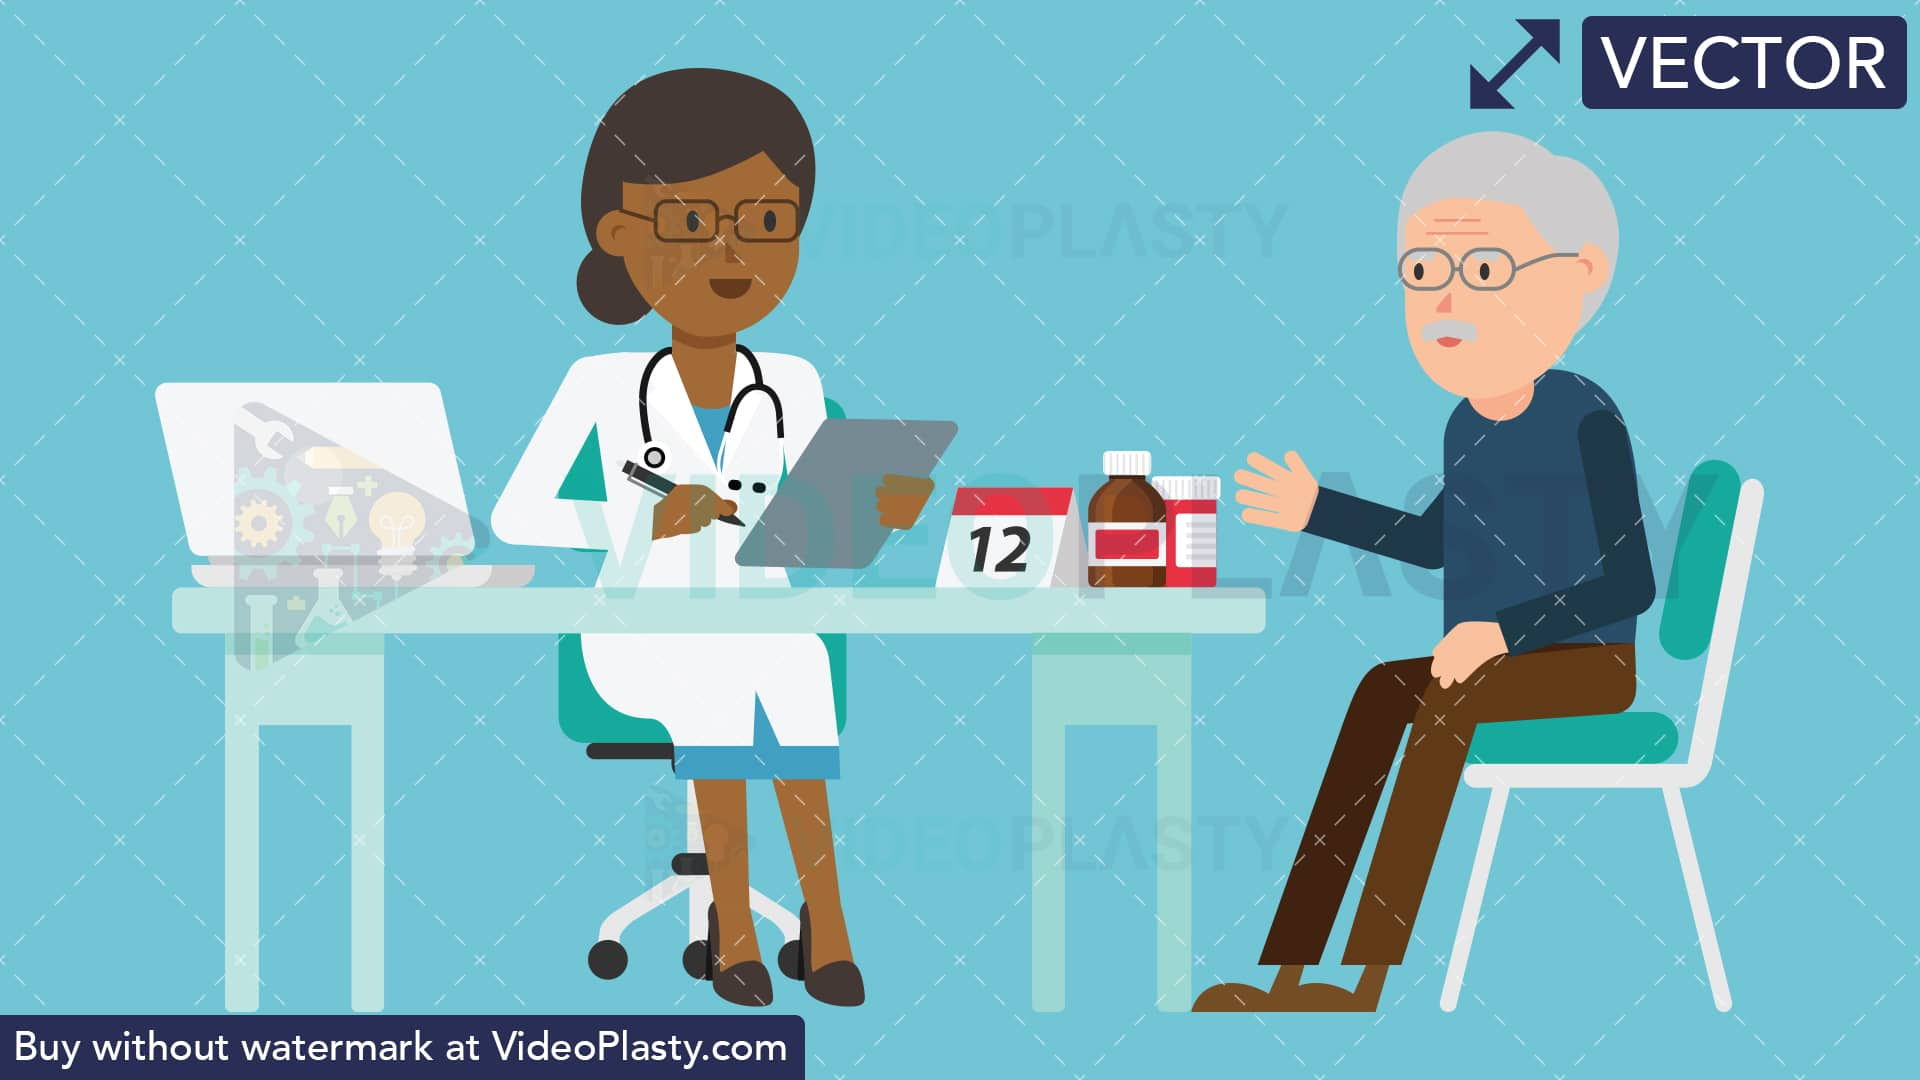 Black female doctor clipart graphic royalty free Black Female Doctor with Patient Consultation [VECTOR] graphic royalty free